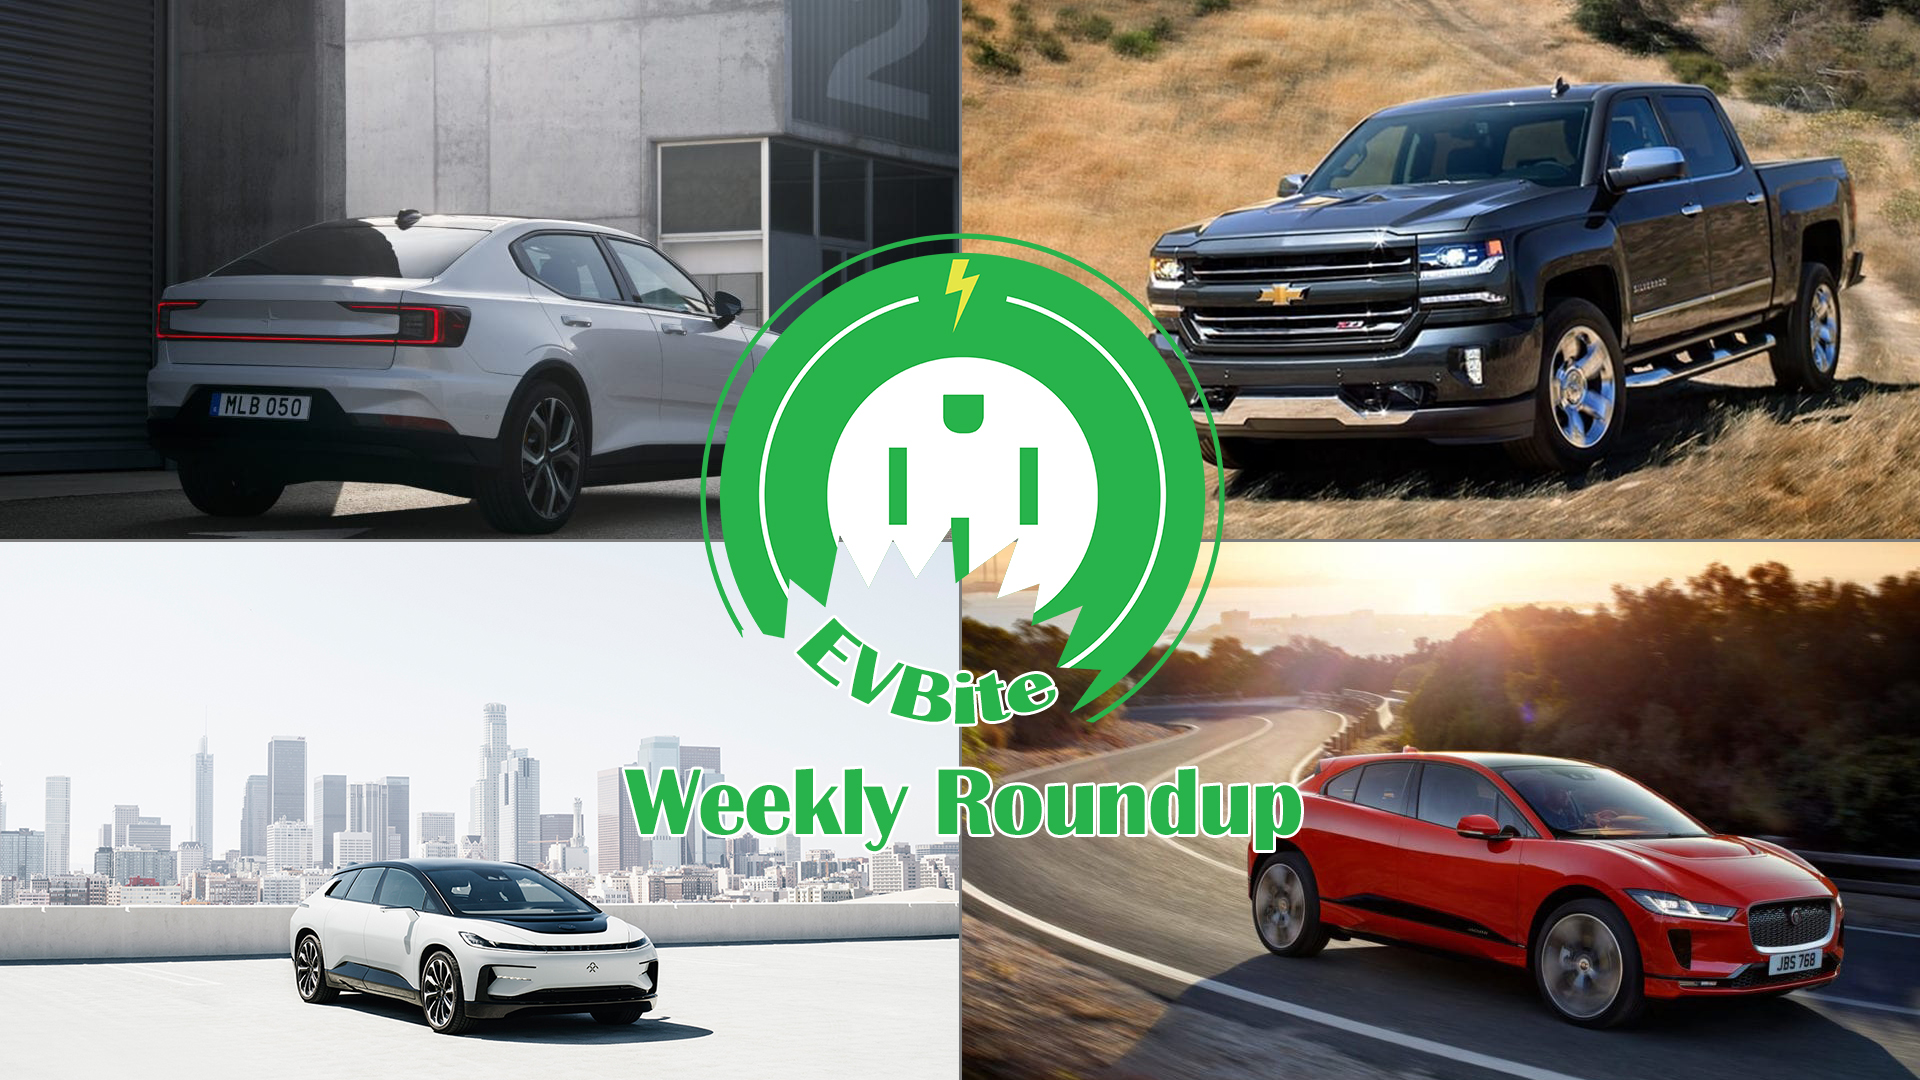 Hy May Everyone And Welcome To Another Addition Of Our Weekly Round Up Where We Recount The Ev News That Didn T Cover At Length